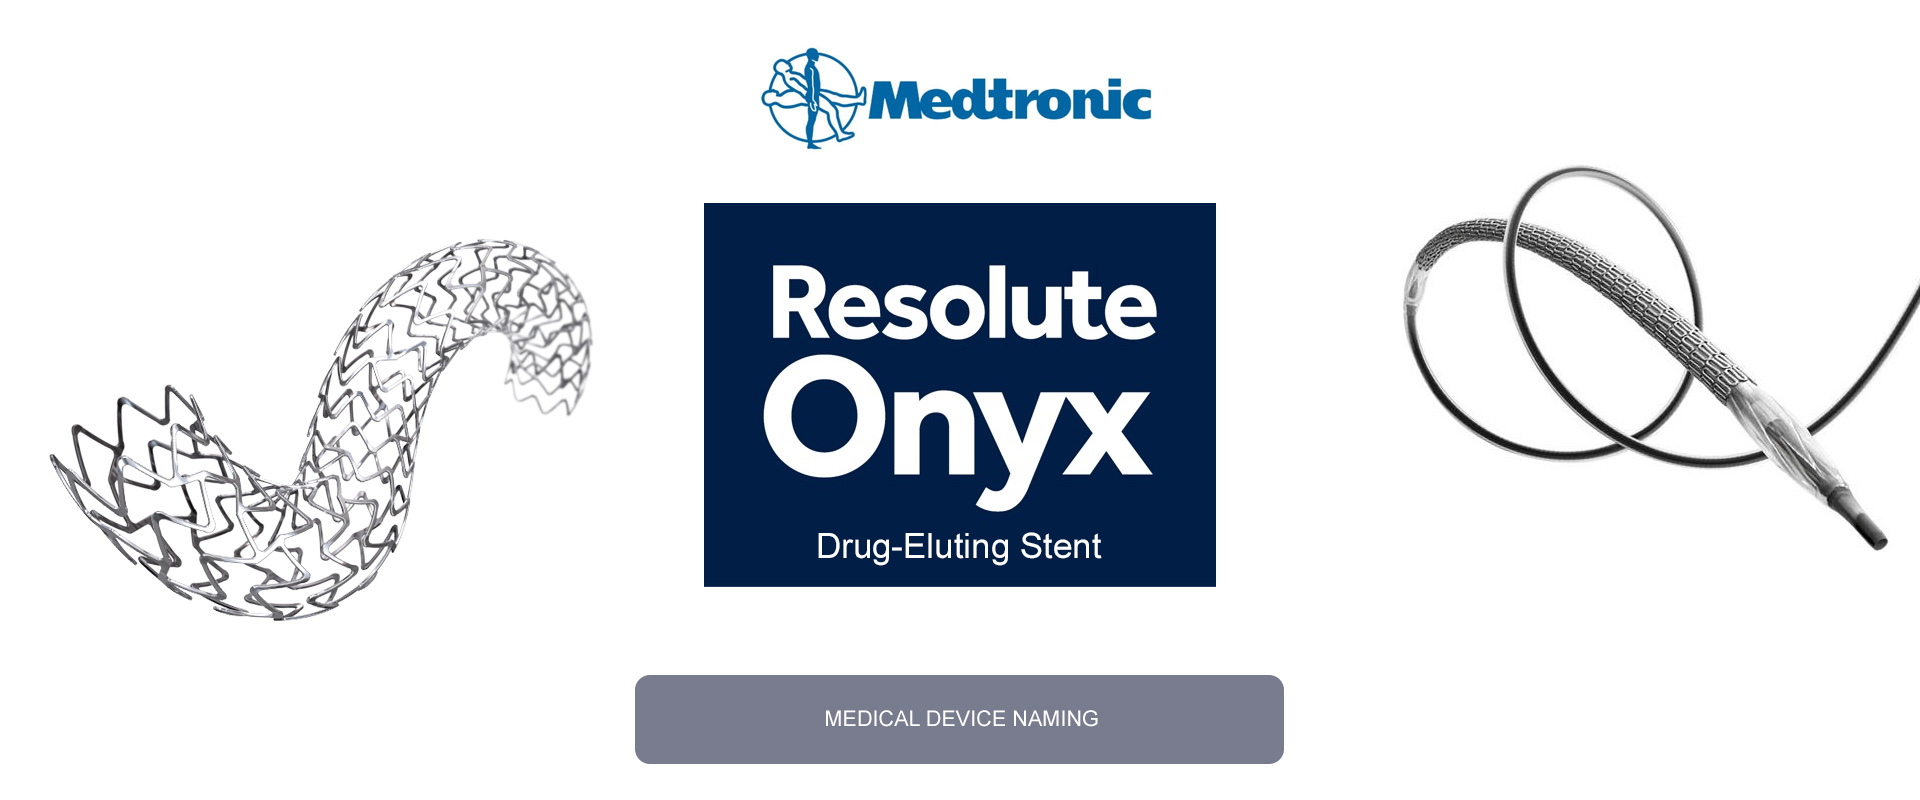 MEDTRONIC - RESOLUTE ONYX